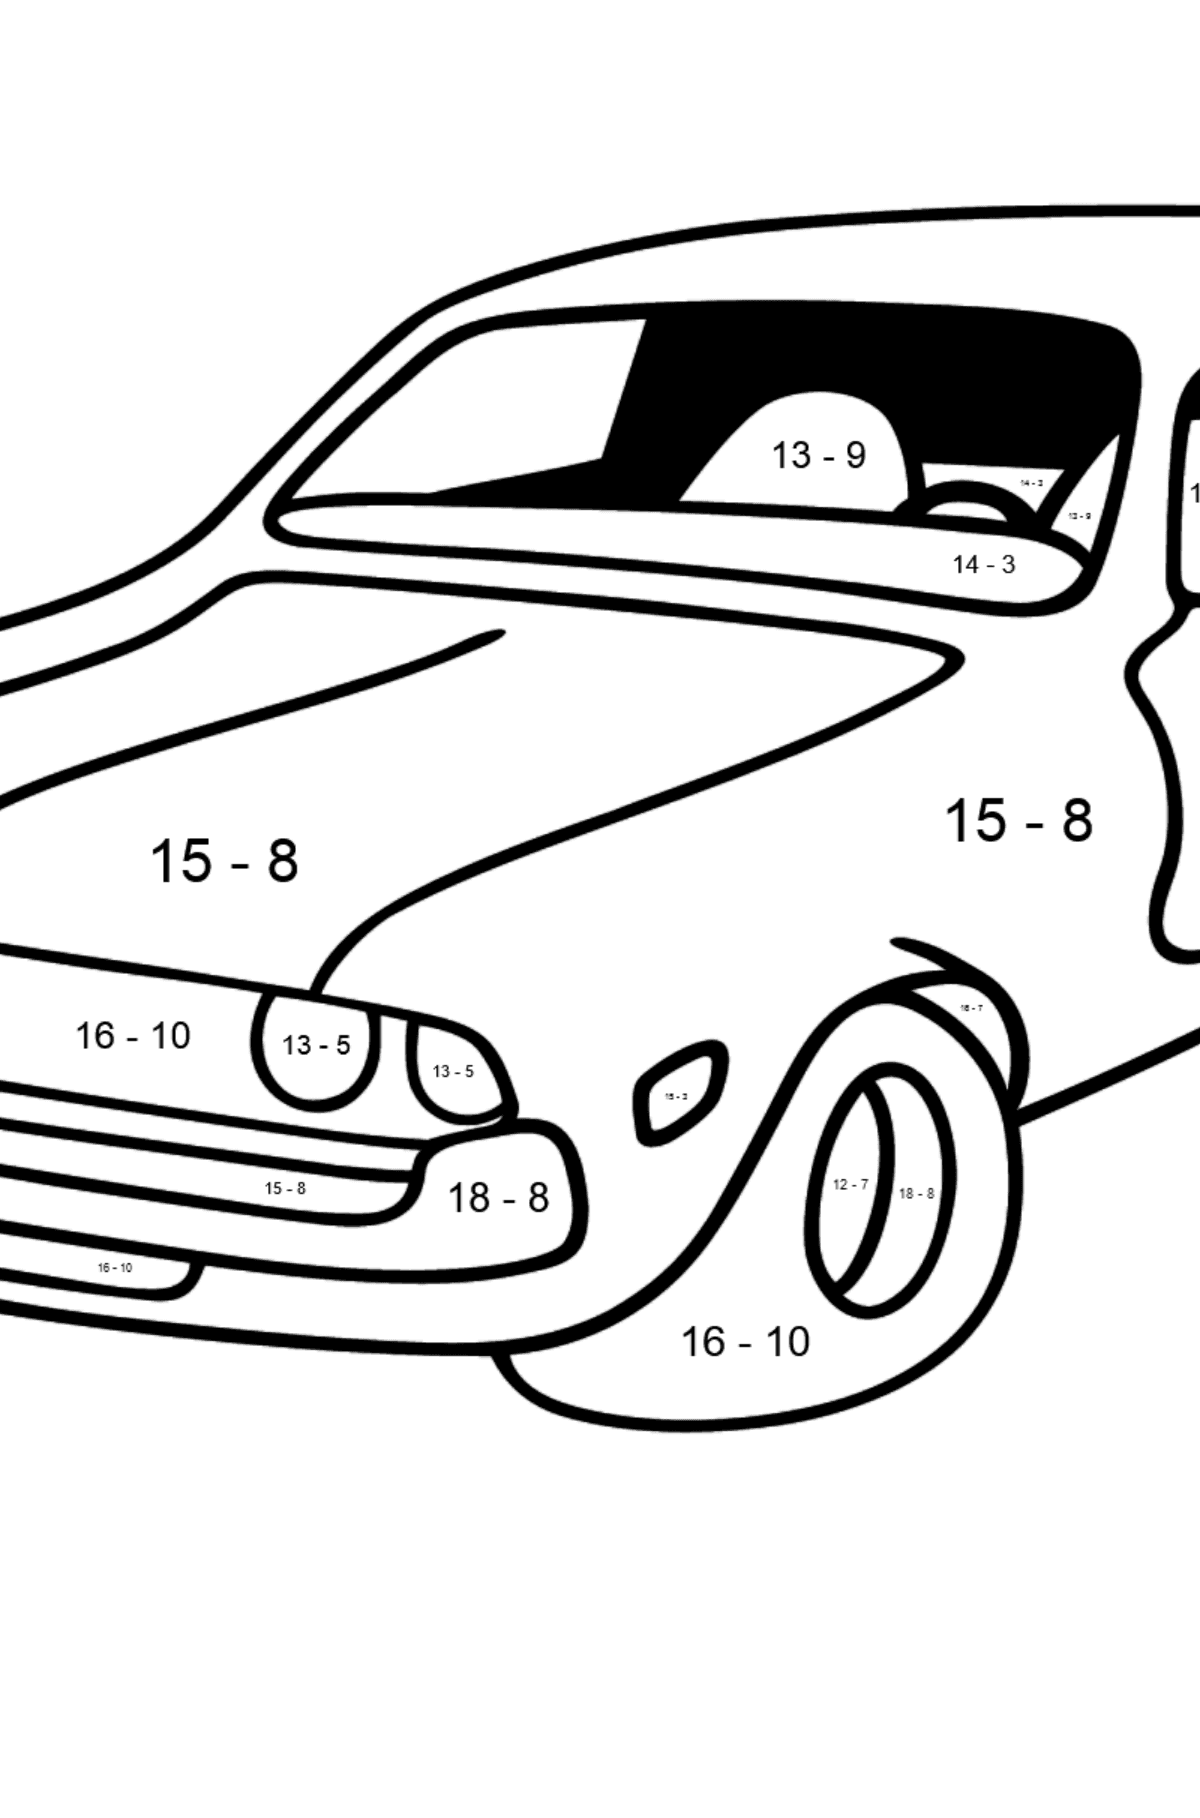 Chevrolet gray car coloring page - Math Coloring - Subtraction for Kids